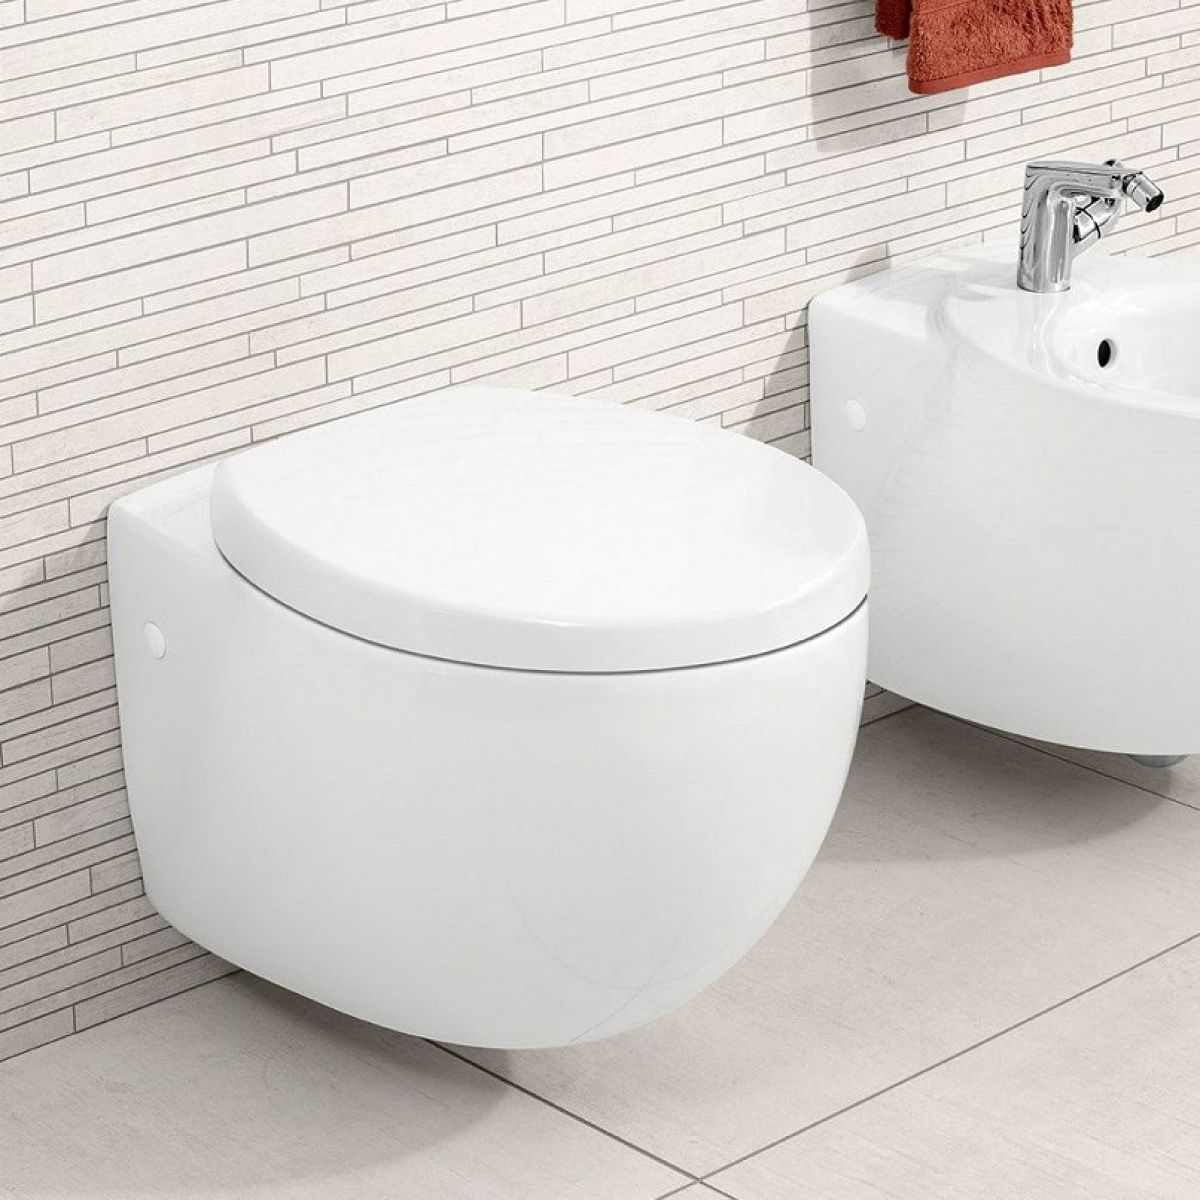 villeroy boch aveo new generation wall hung toilet uk bathrooms. Black Bedroom Furniture Sets. Home Design Ideas